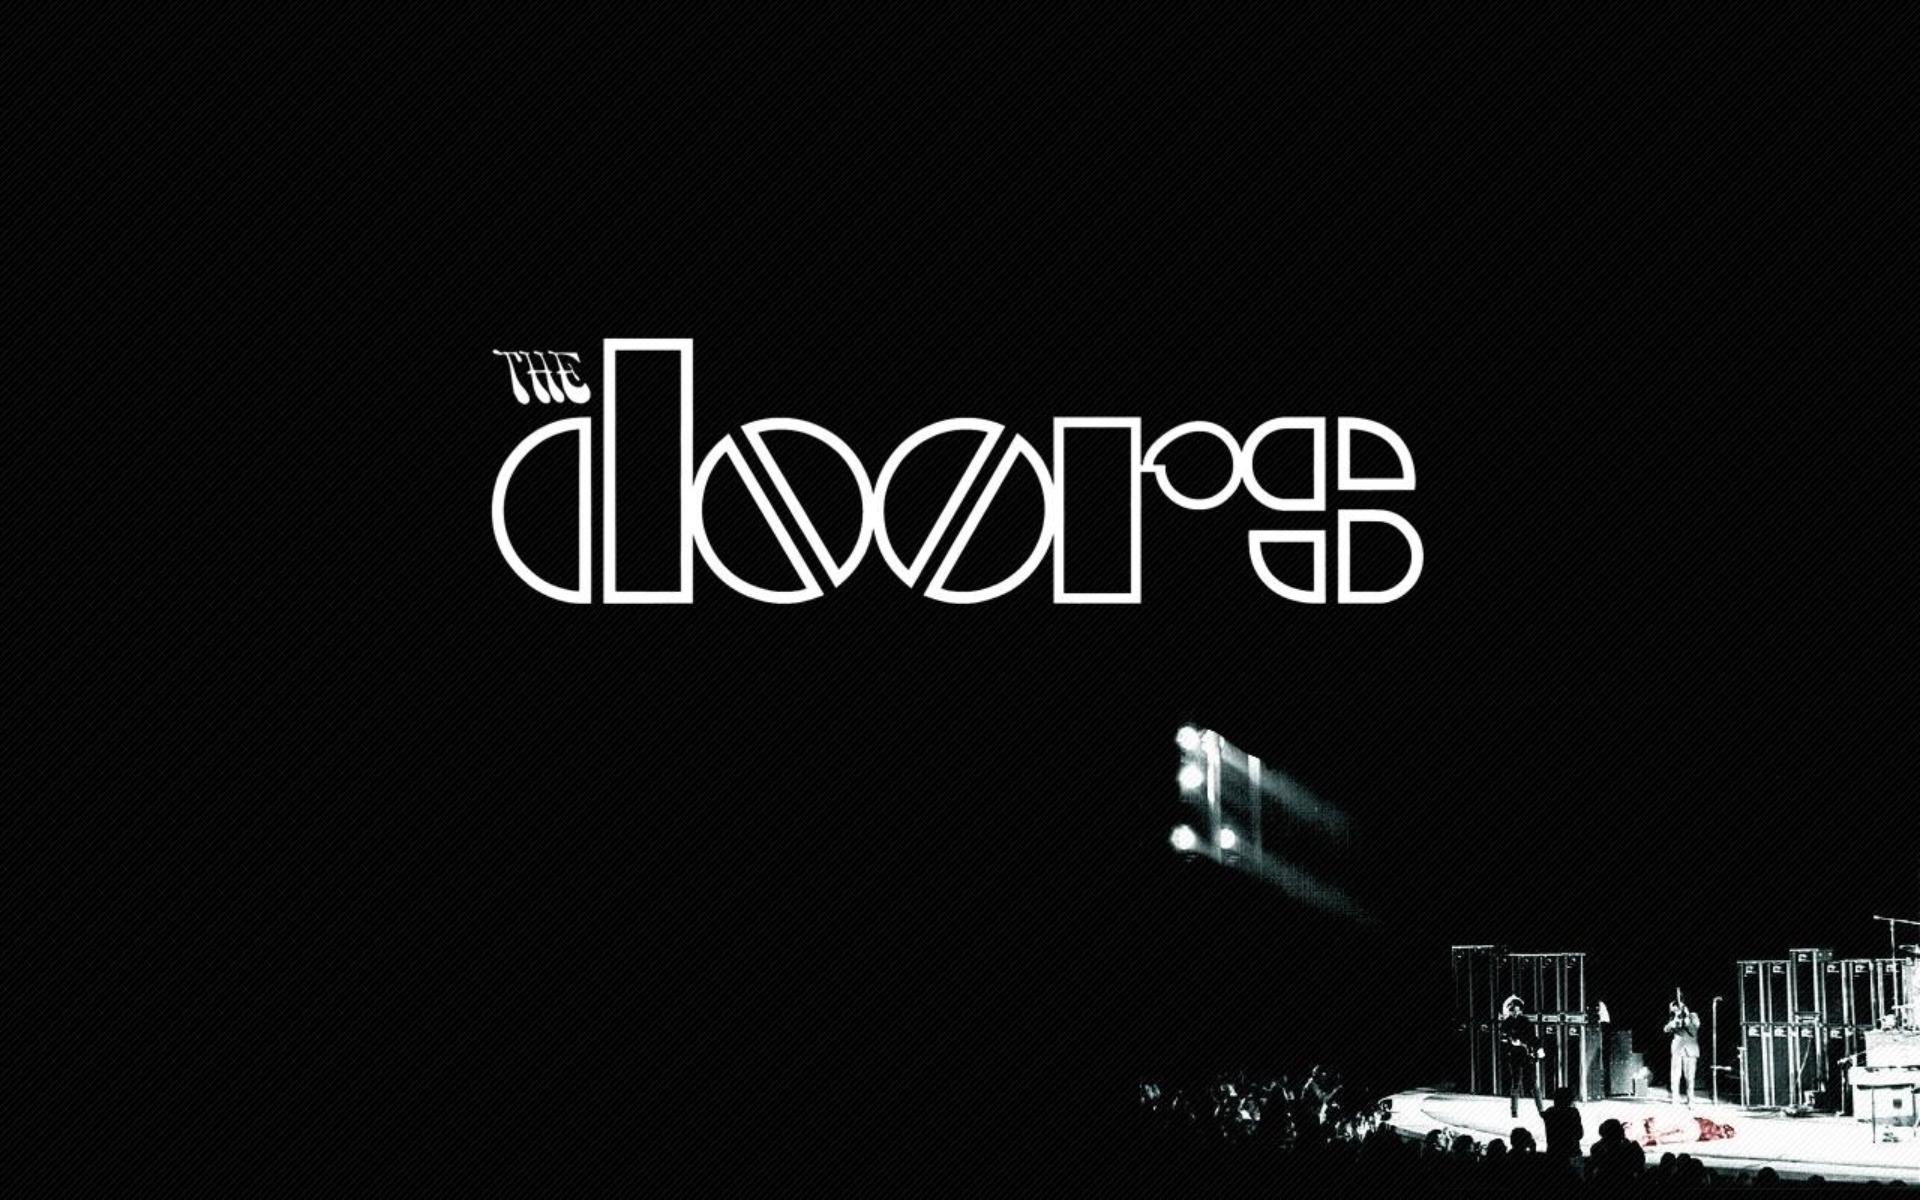 The Doors Wallpapers Pictures Images